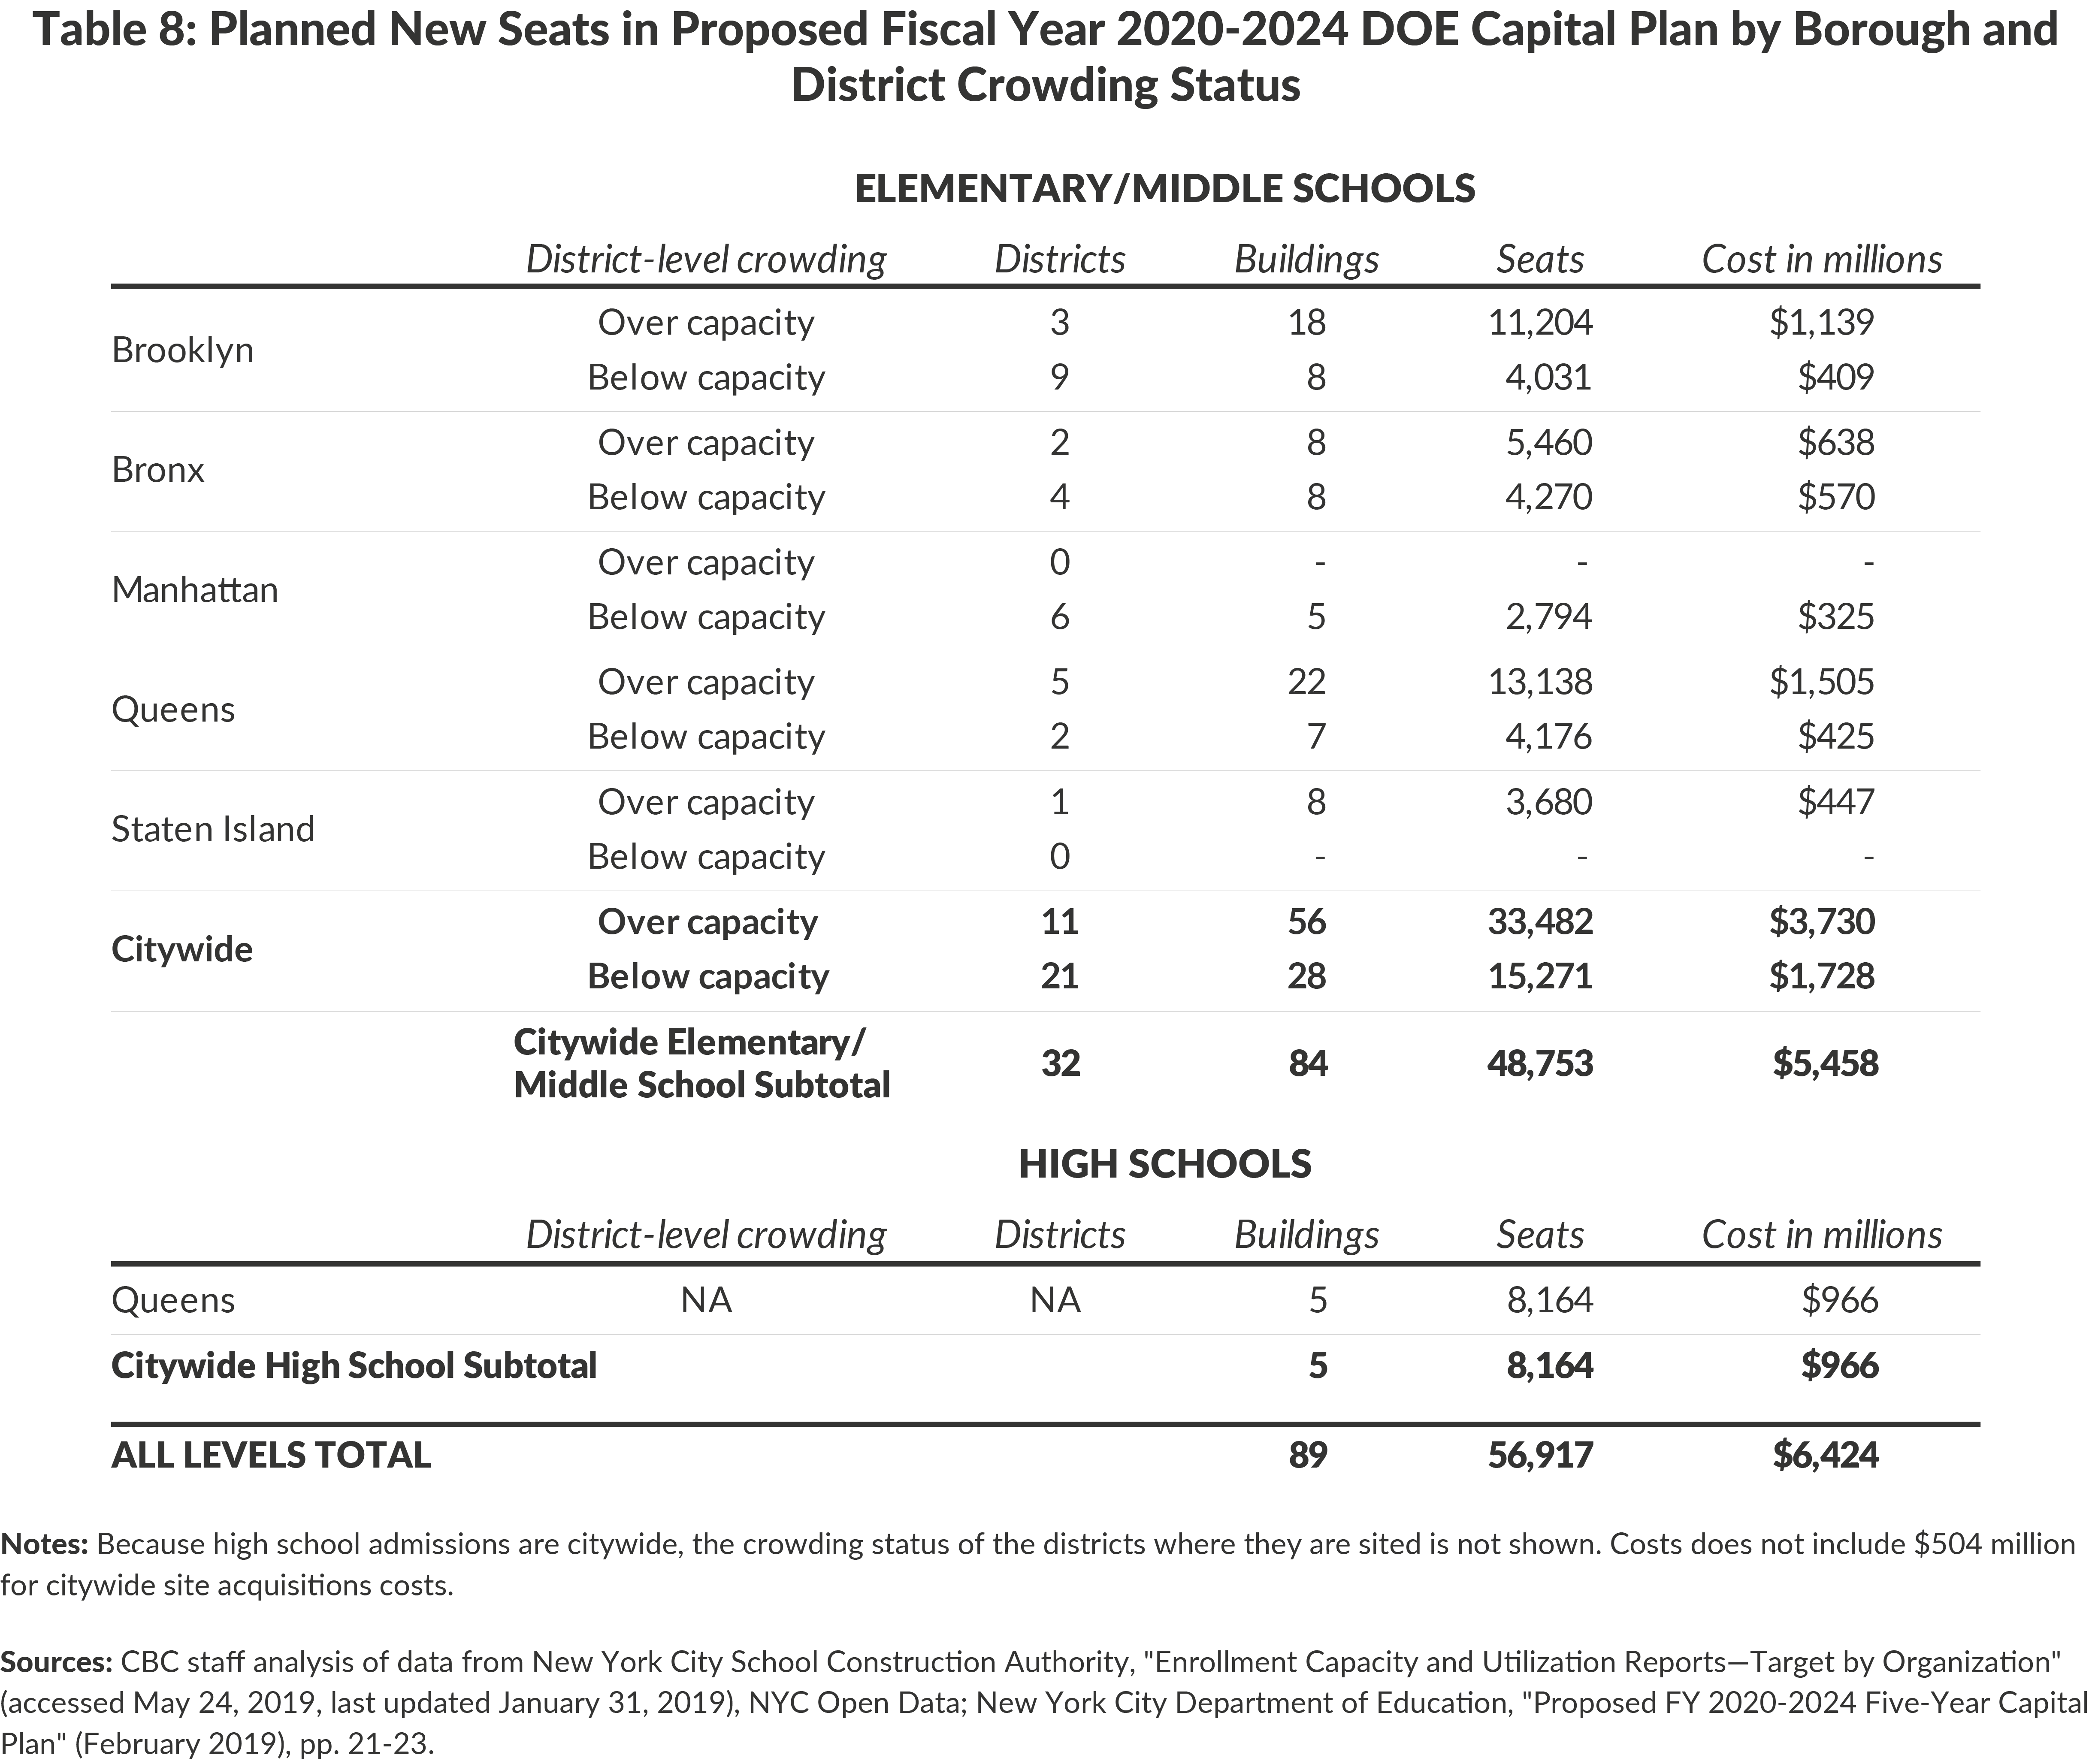 Table 8: Planned New Seats in Proposed Fiscal Year 2020-2024 DOE Capital Plan by Borough and District Crowding Status